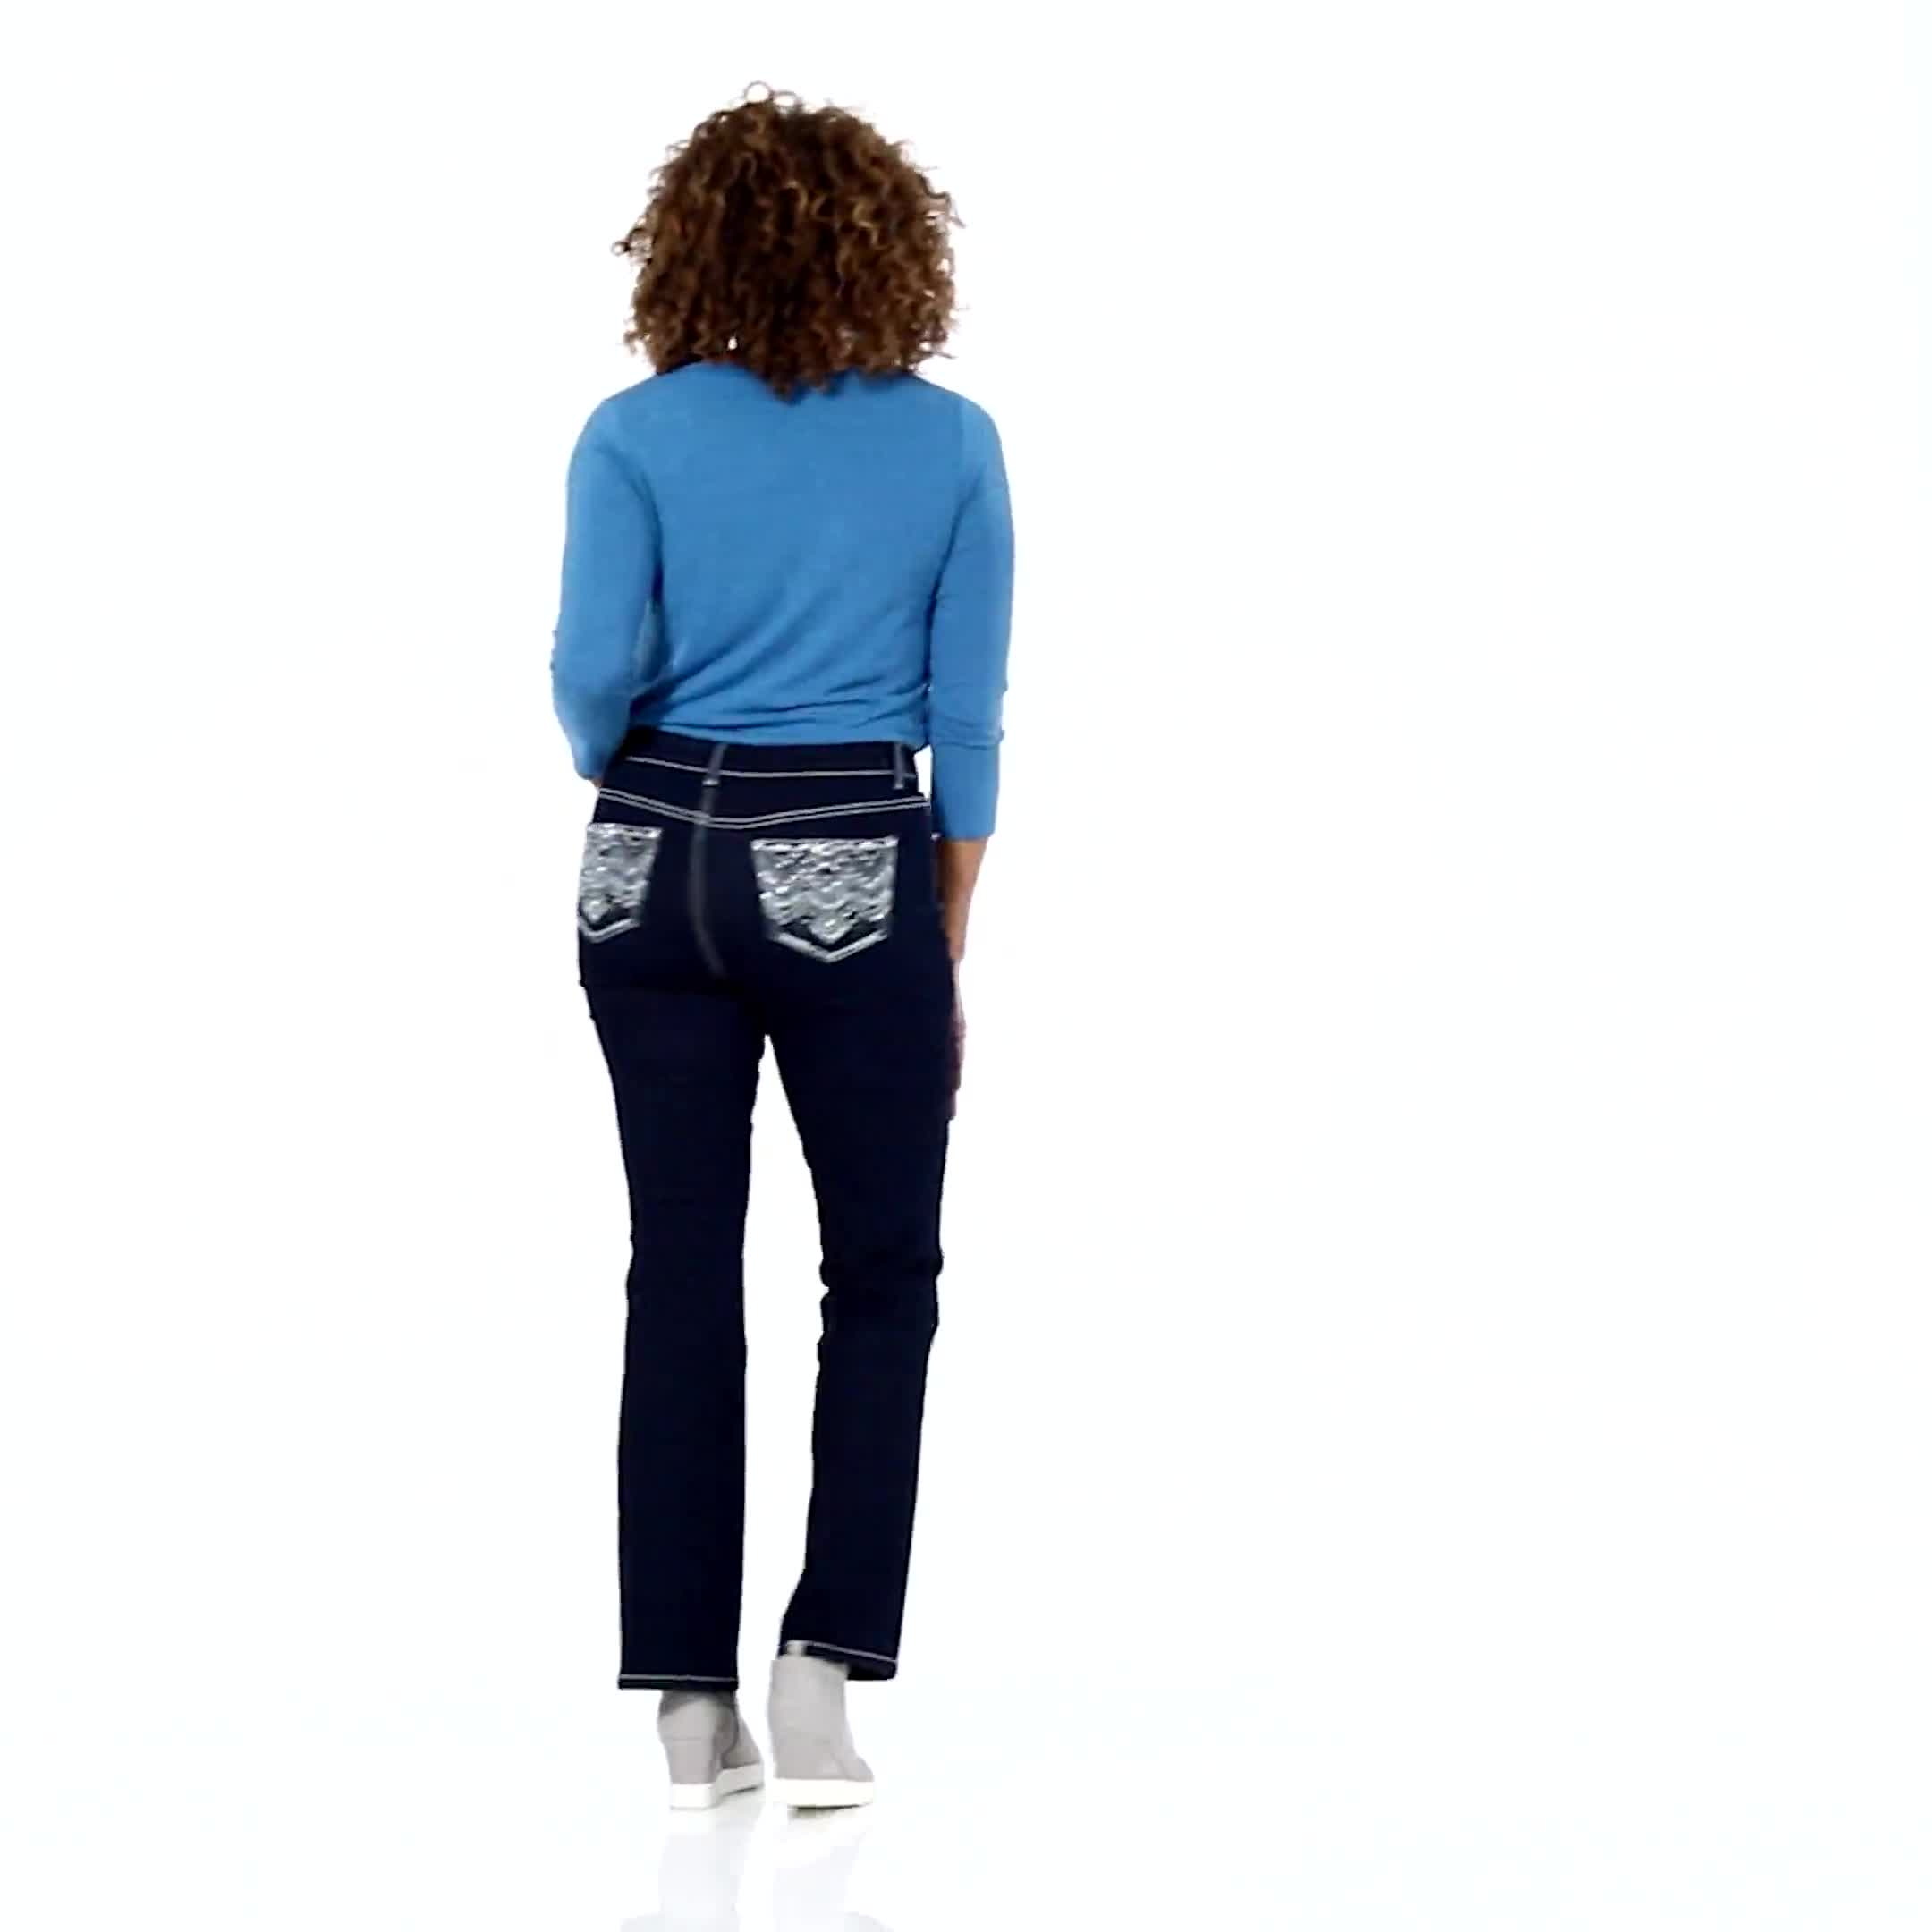 Westport 5 Pocket Signature Bootcut Jean with Chevron Pattern Bling Back Pocket - Video